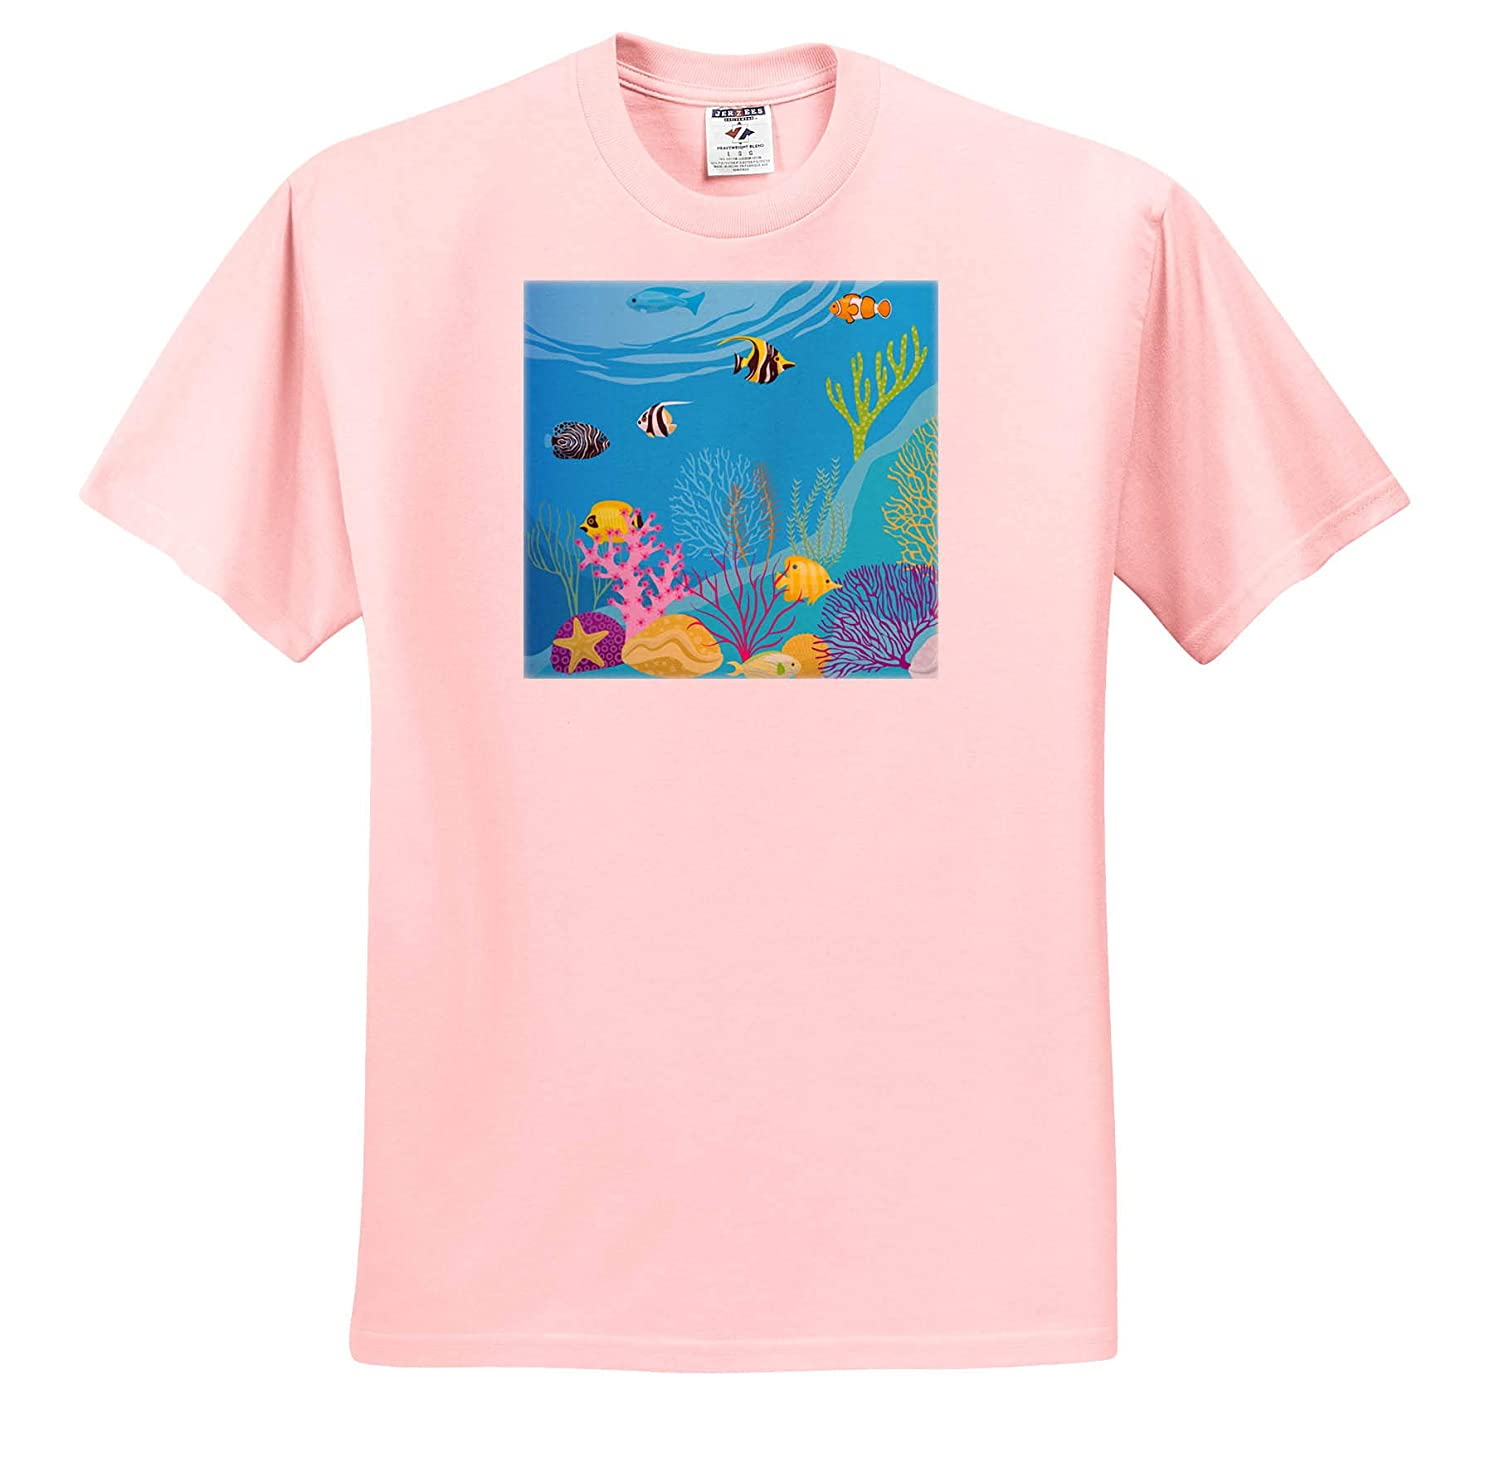 T-Shirts 3dRose Sven Herkenrath Animal Cute Image of Marine Life Colorful Fishes and Plants